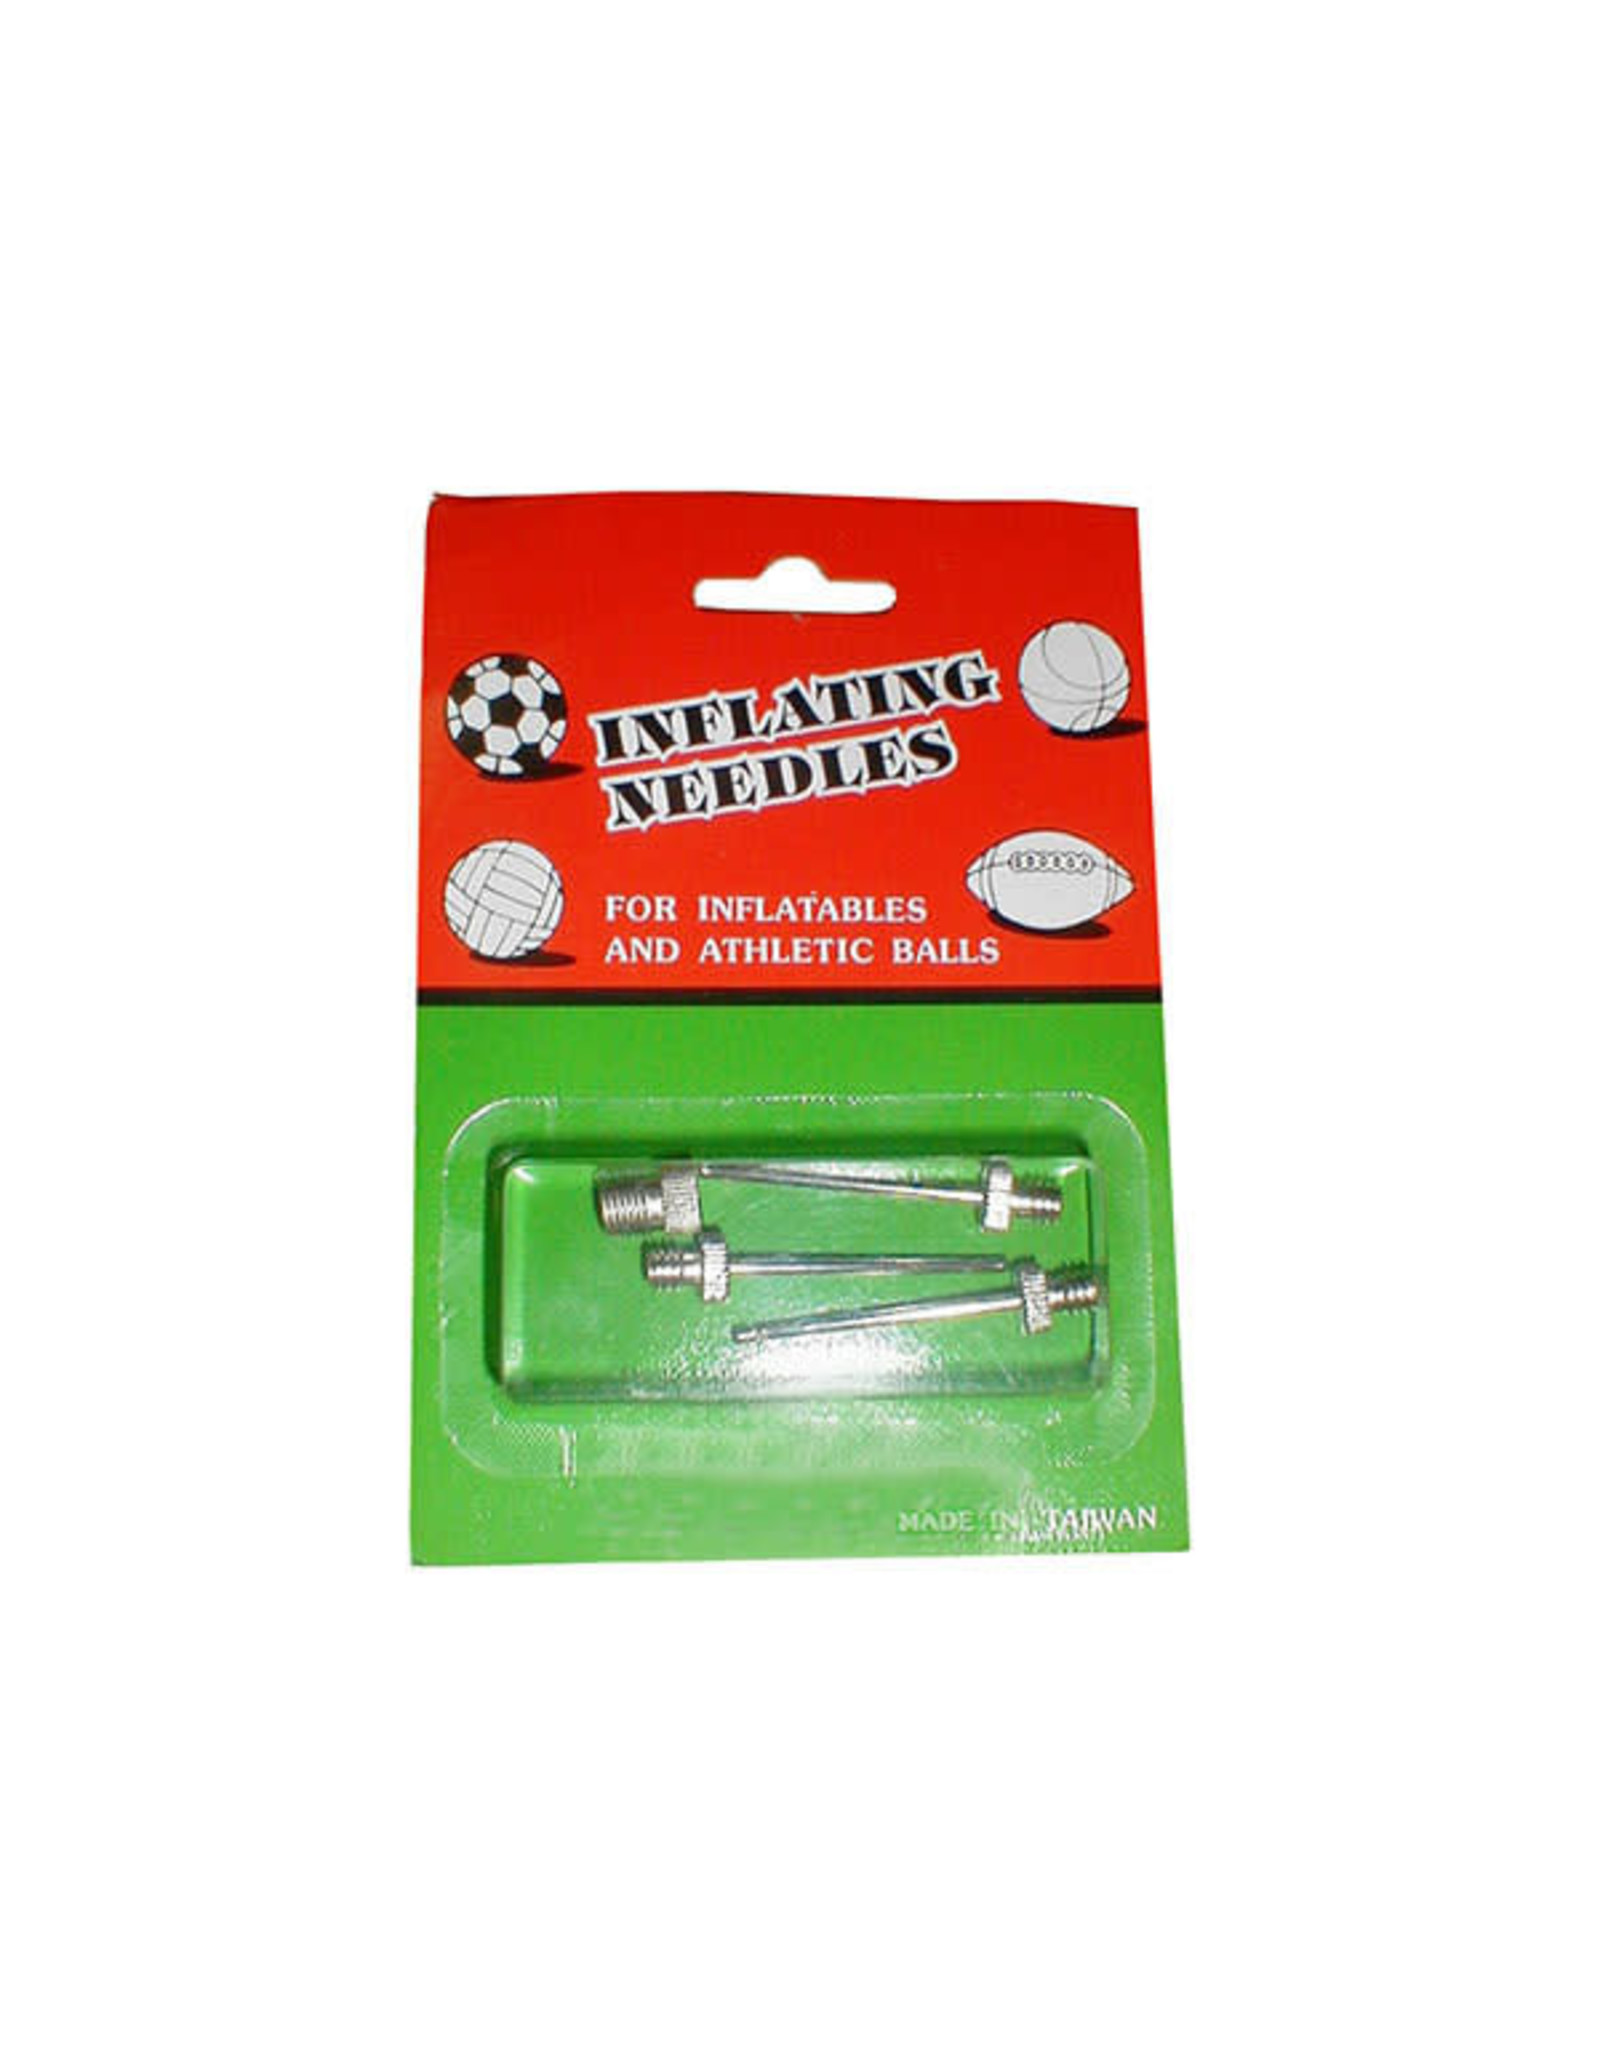 Inflating Needles (3 Pieces)